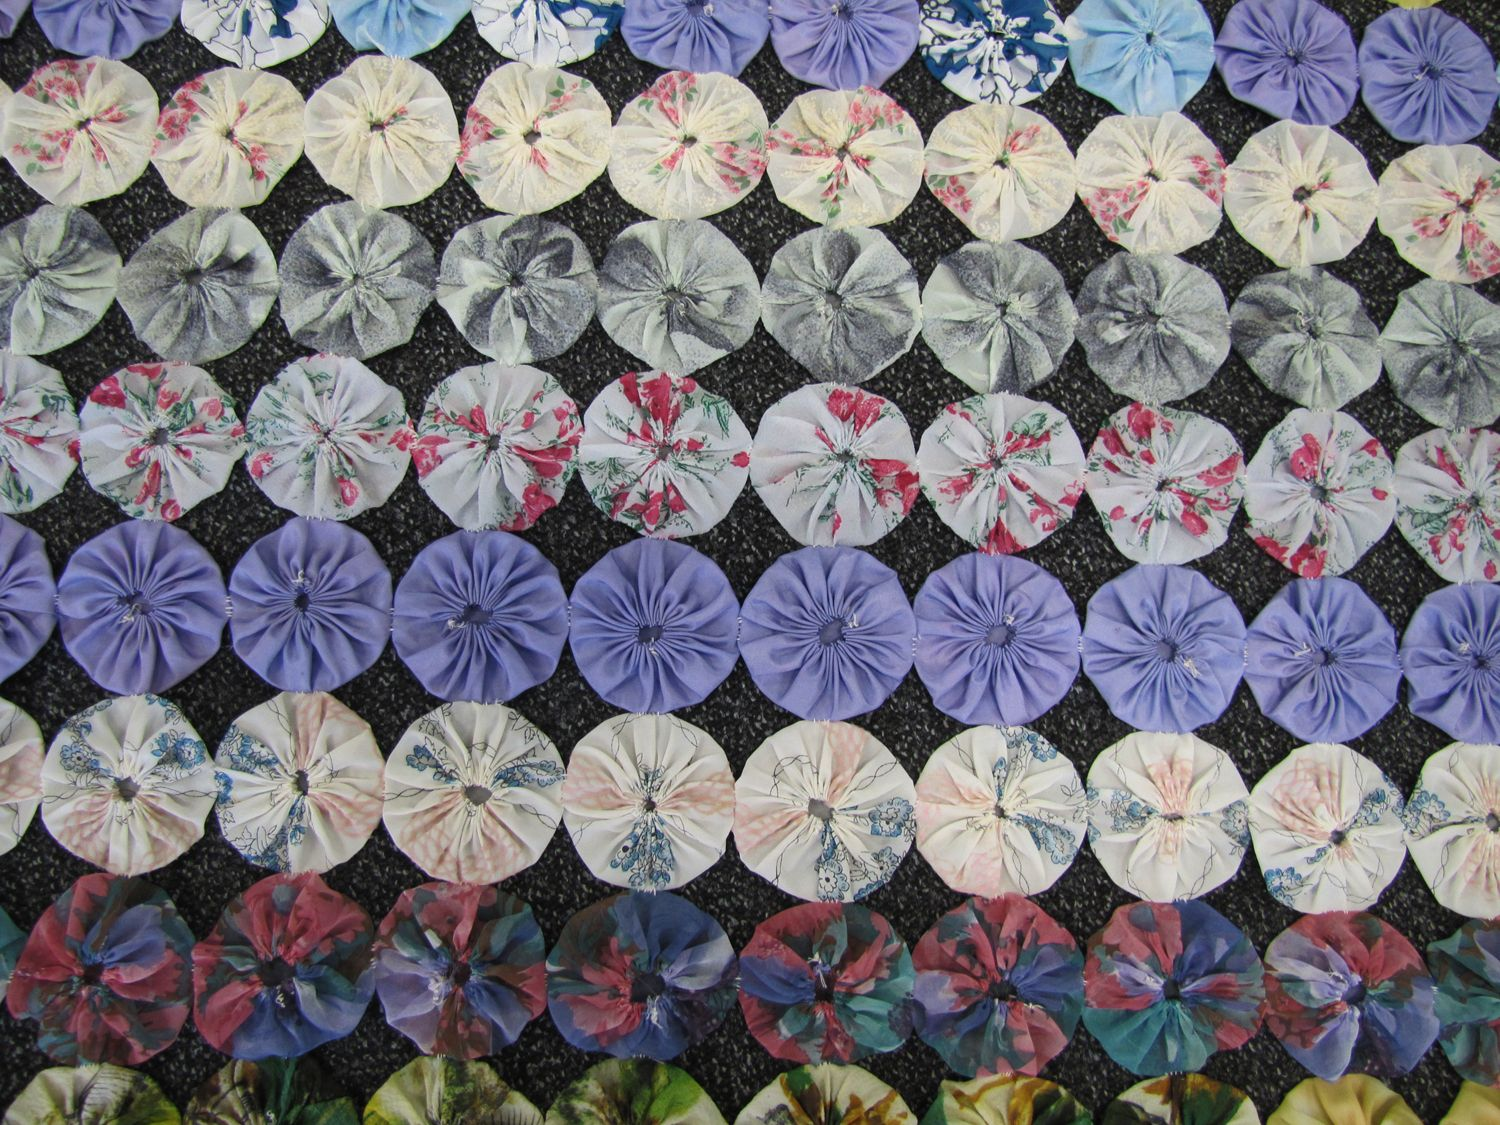 quilting circles | UTas ePrints - Photographs of quilt made from ... : gathered quilt - Adamdwight.com